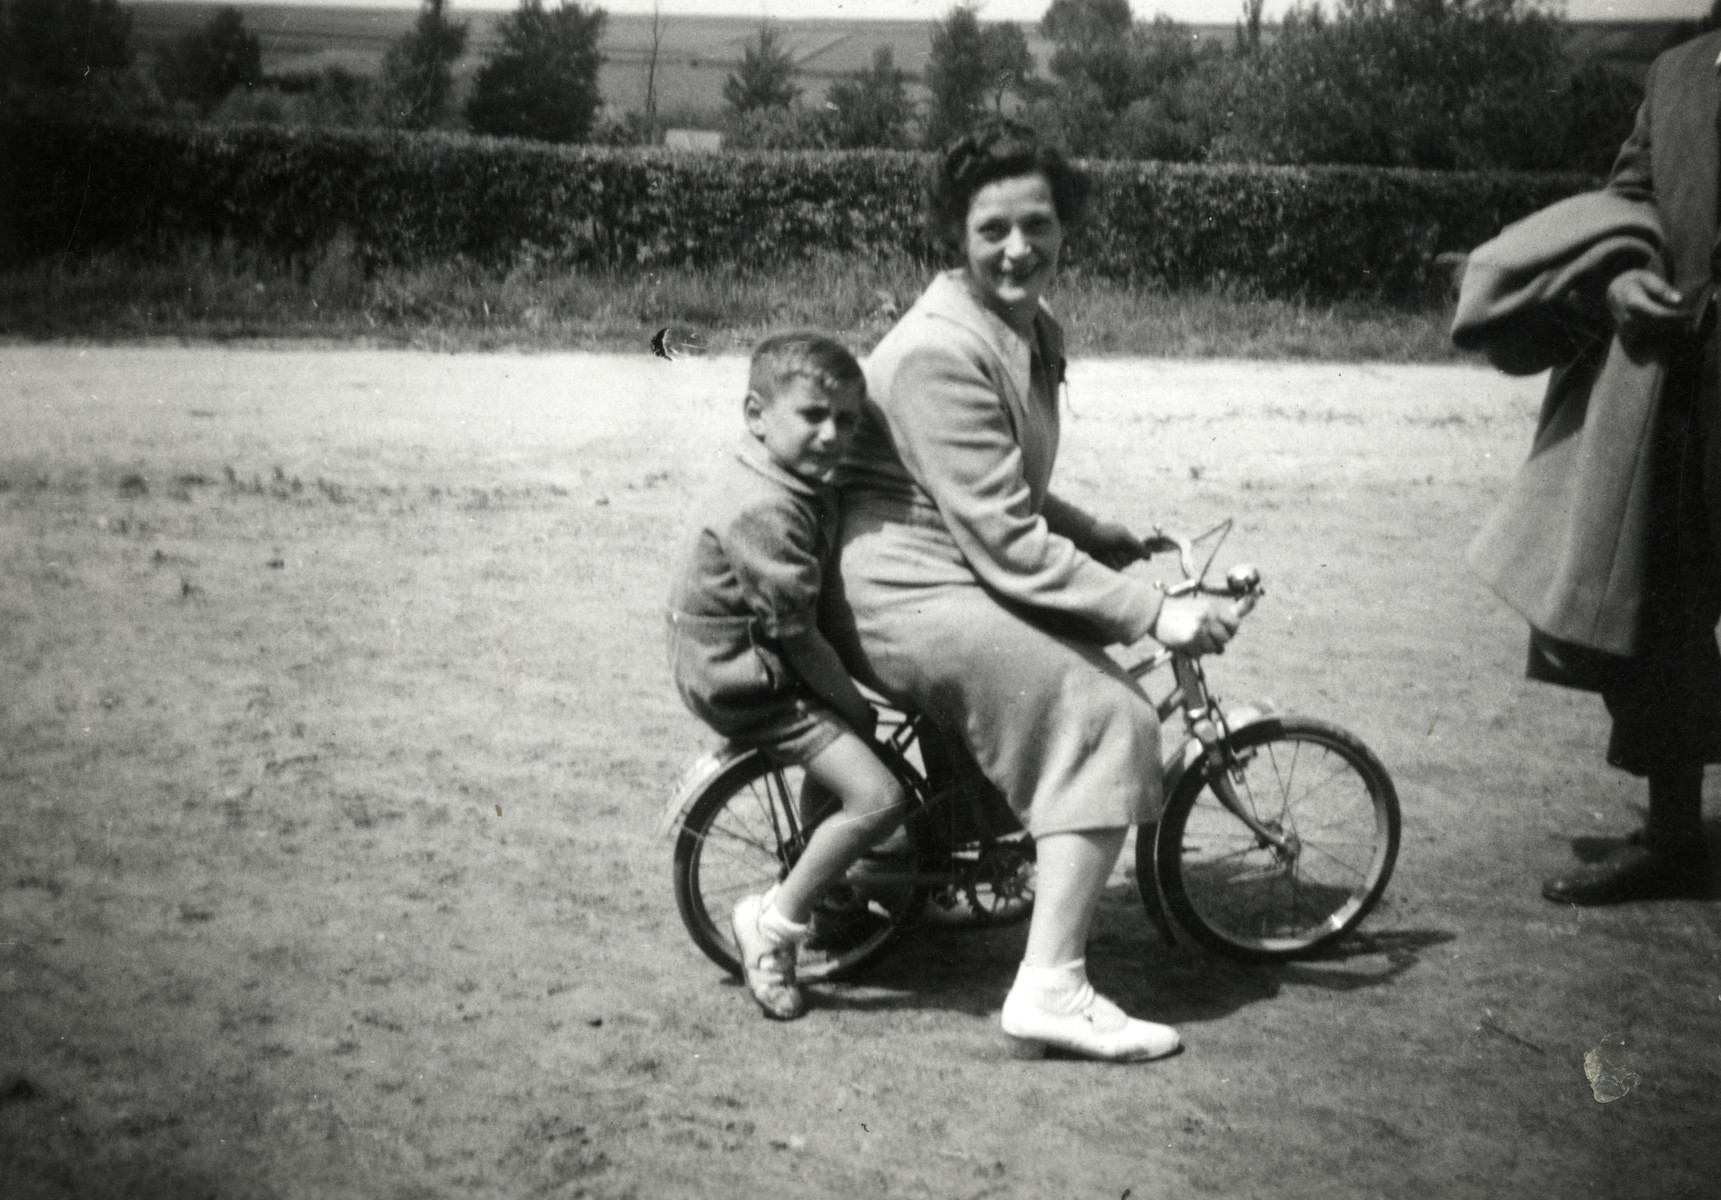 Michel rides on a bicycle behind his aunt, Paulina Trocki when she came to visit him in hiding.